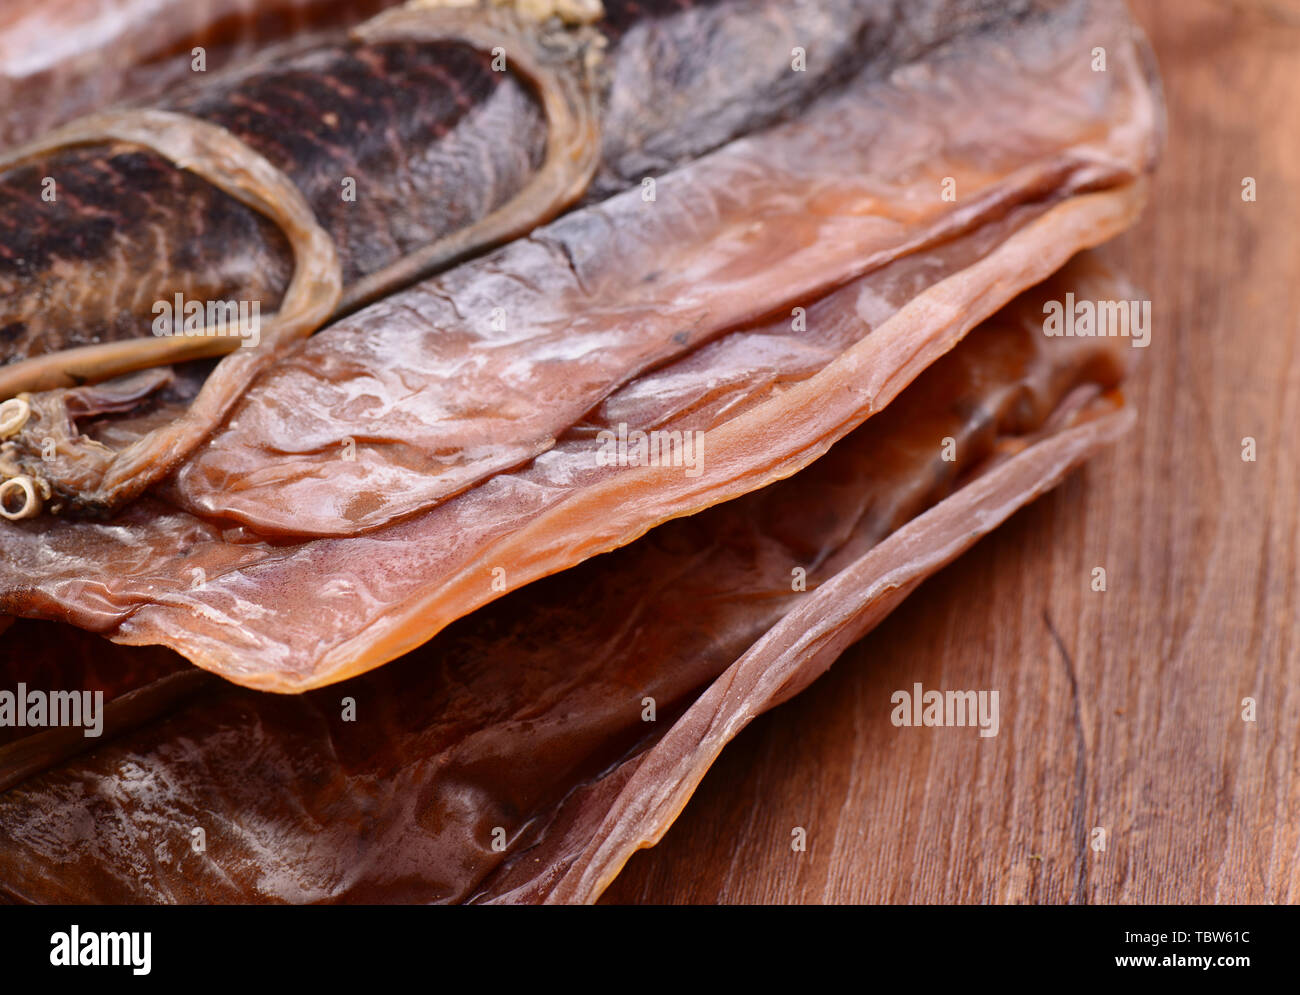 Dry Squid Stock Photos & Dry Squid Stock Images - Alamy